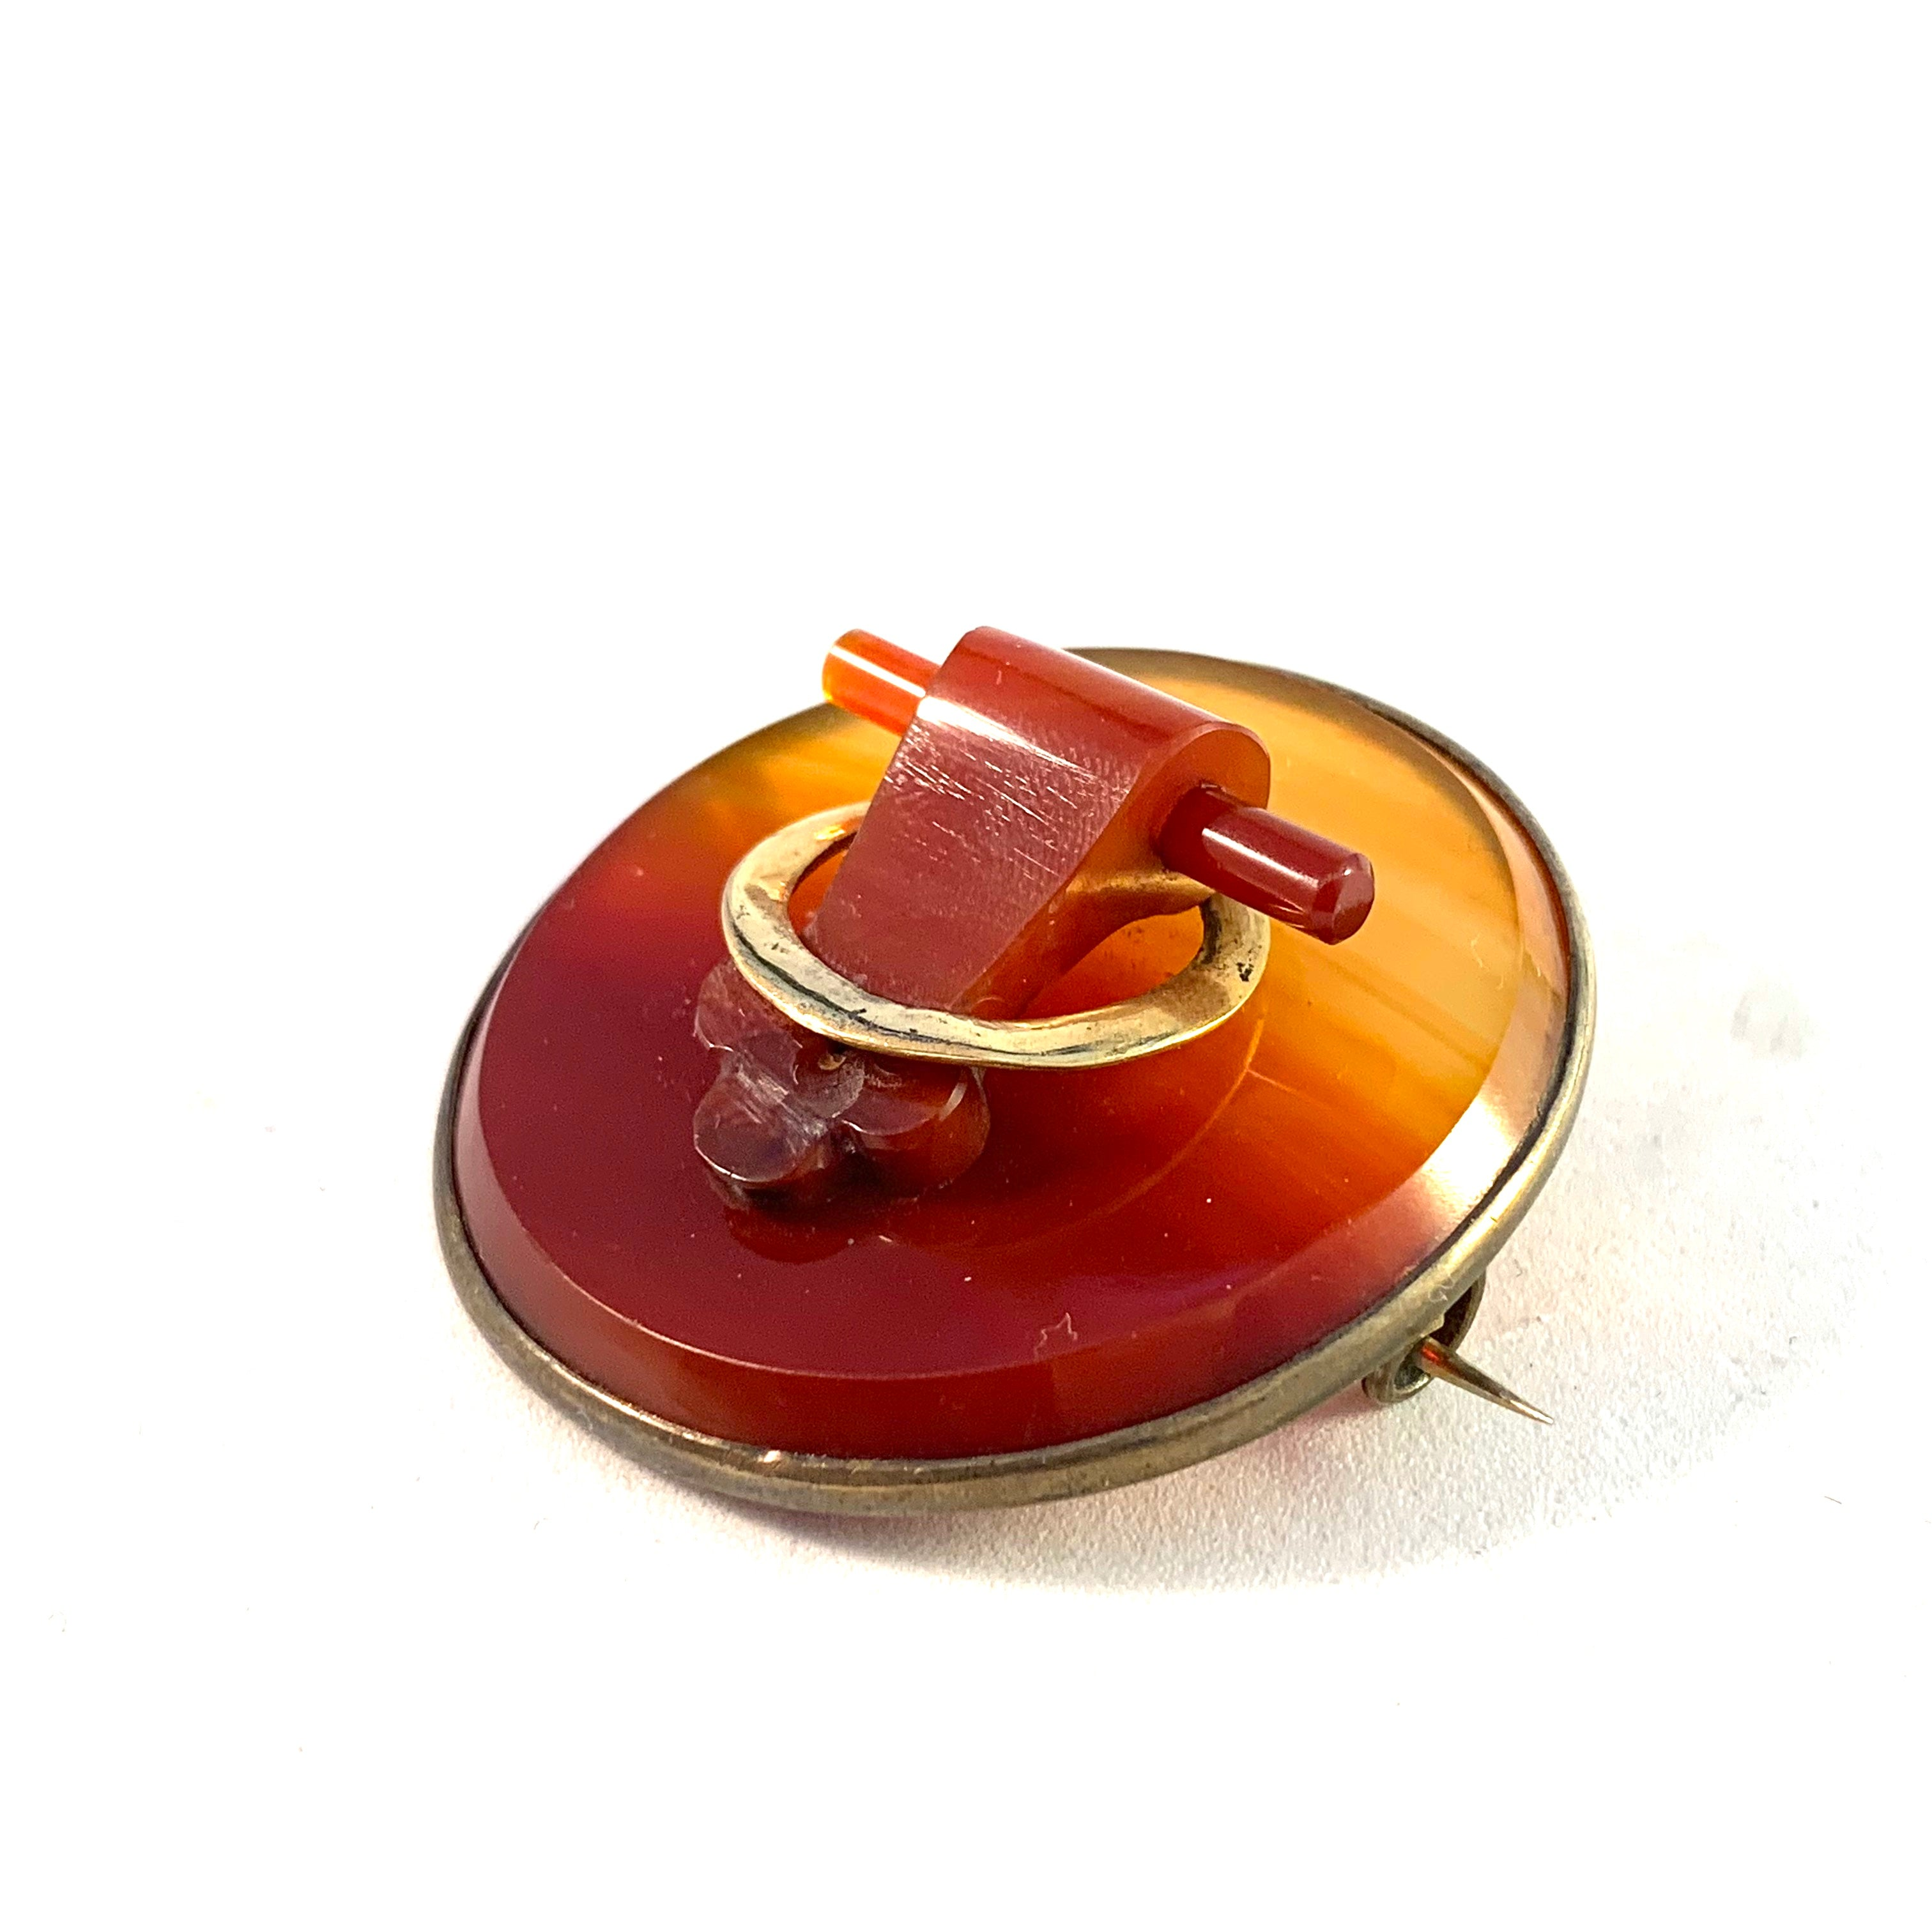 Nils Dahlström, Sweden year 1916 Antique Silver Gold Carved Agate Brooch.